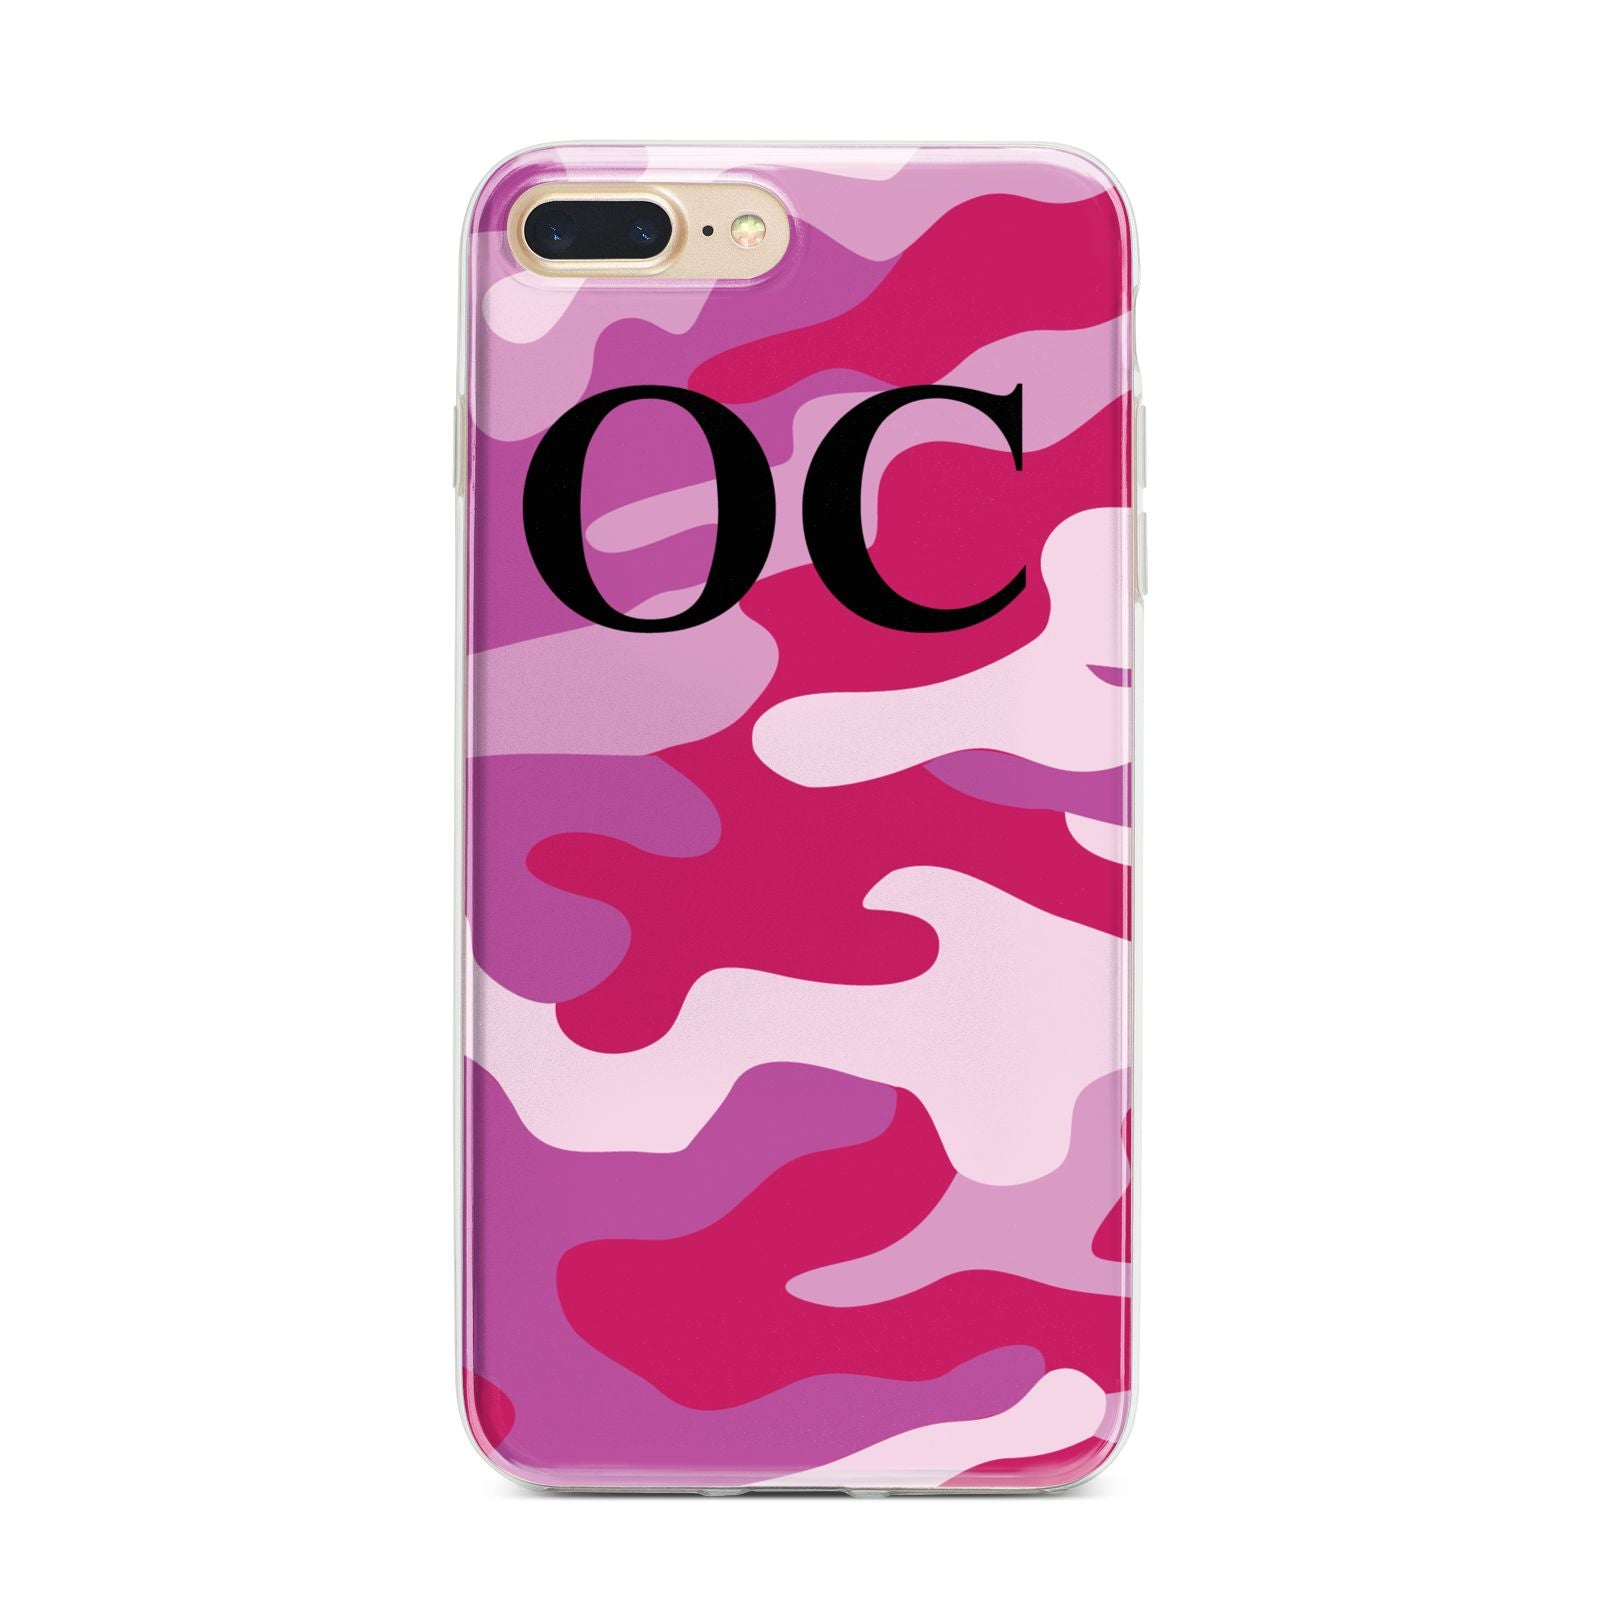 Camouflage Personalised iPhone 7 Plus Bumper Case on Gold iPhone